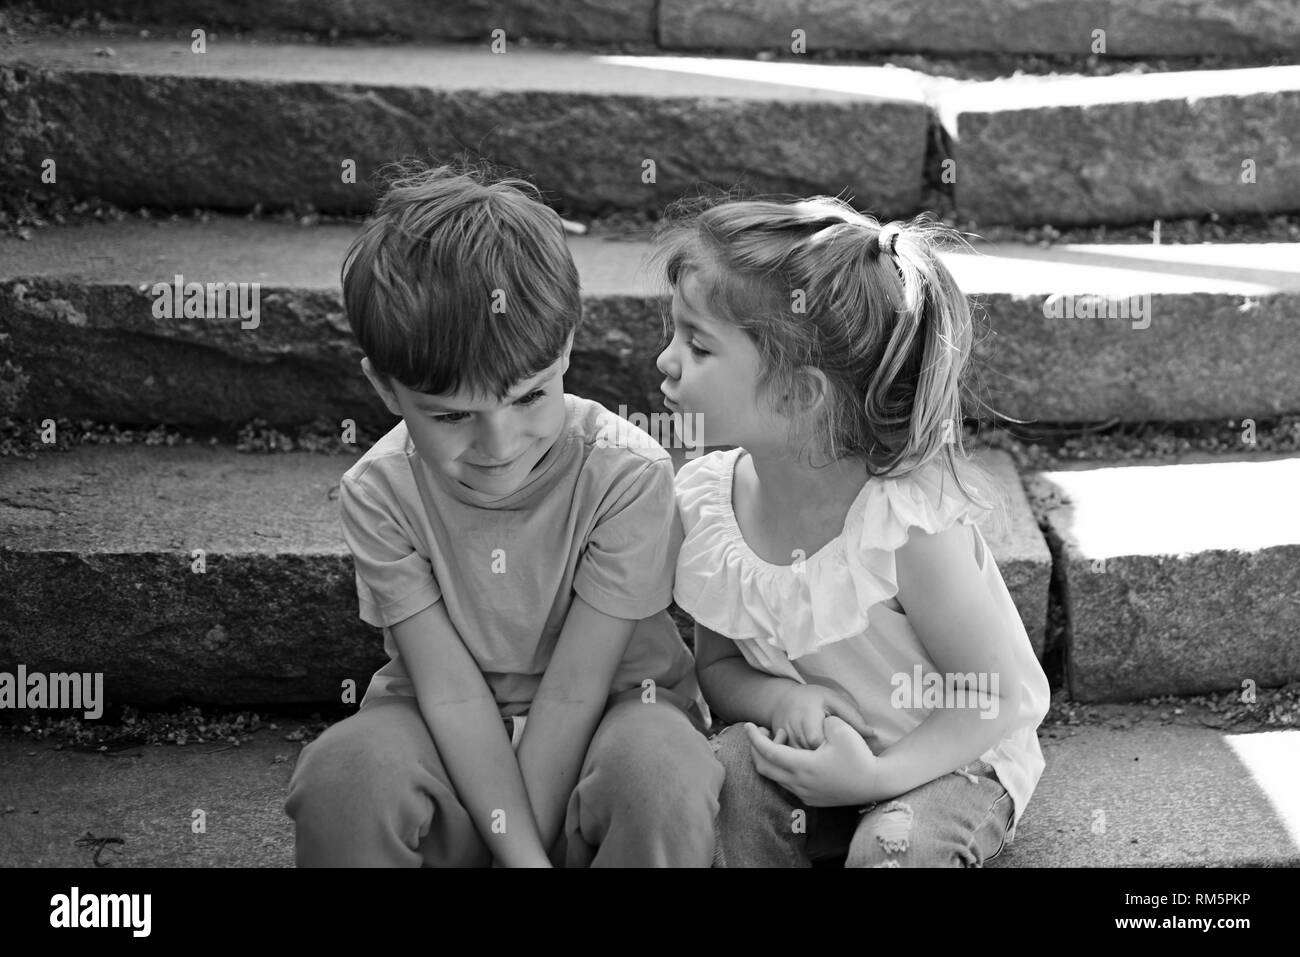 Girl kissing boy black and white stock photos images alamy